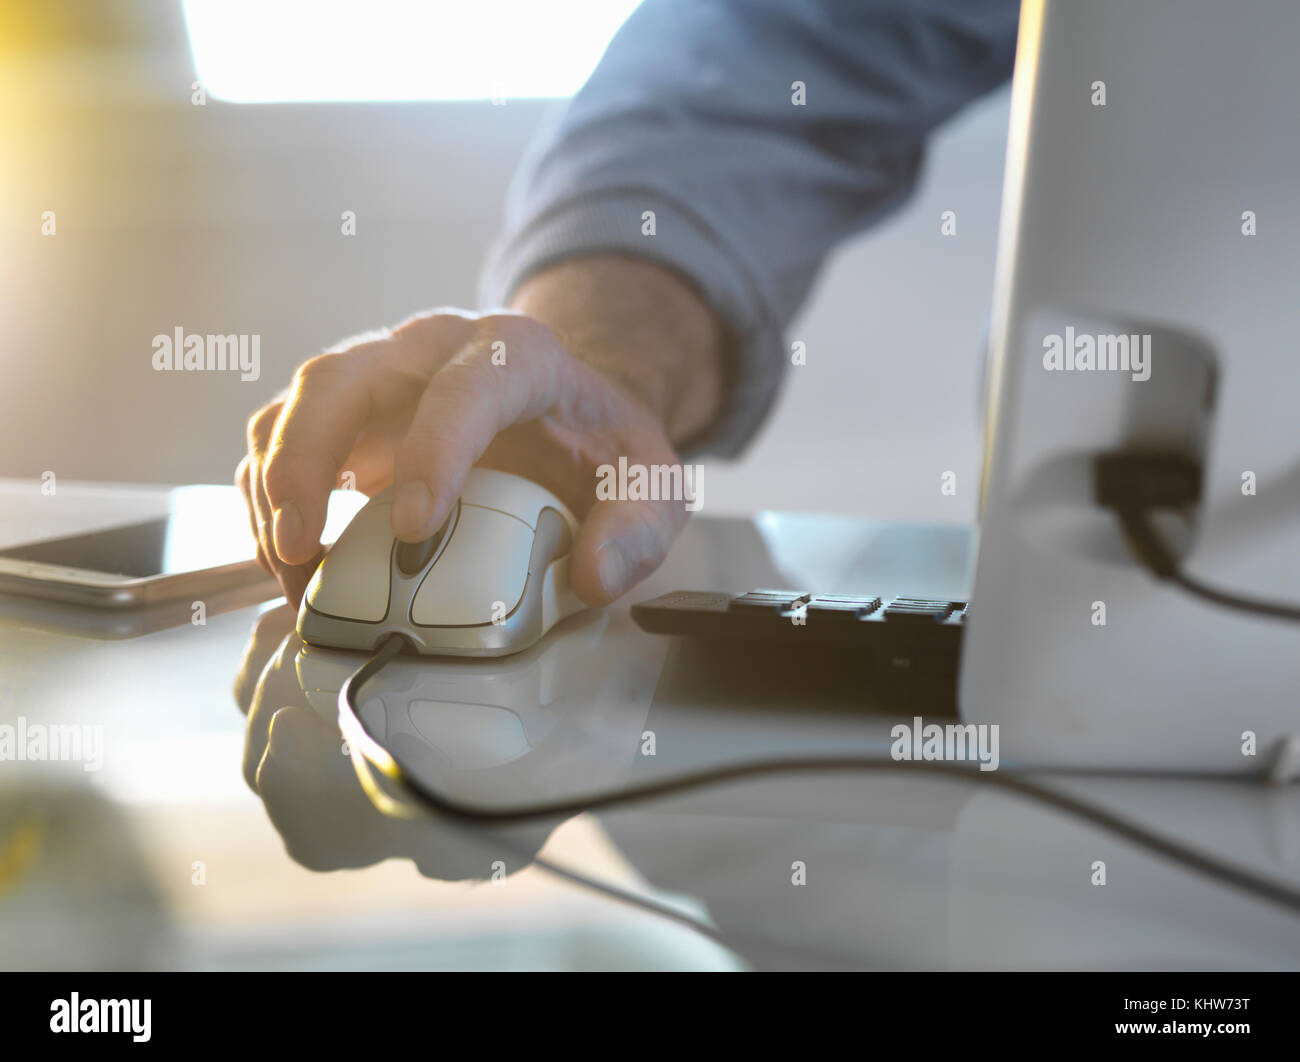 Businessman's hand on a computer mouse working in office - Stock Image